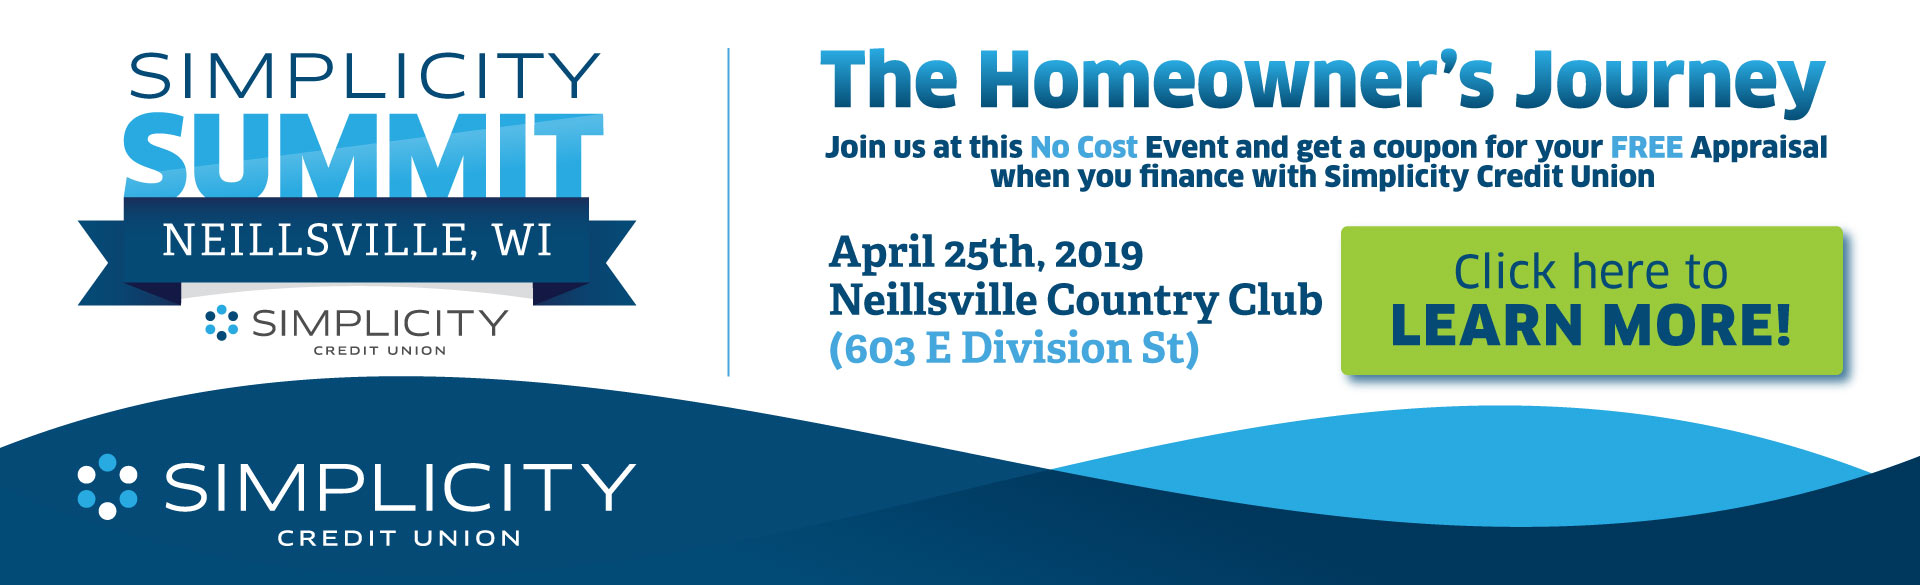 Simplicity Summit - Join us for a no cost mortgage education event on April 25th at the Neillsville Country Club!